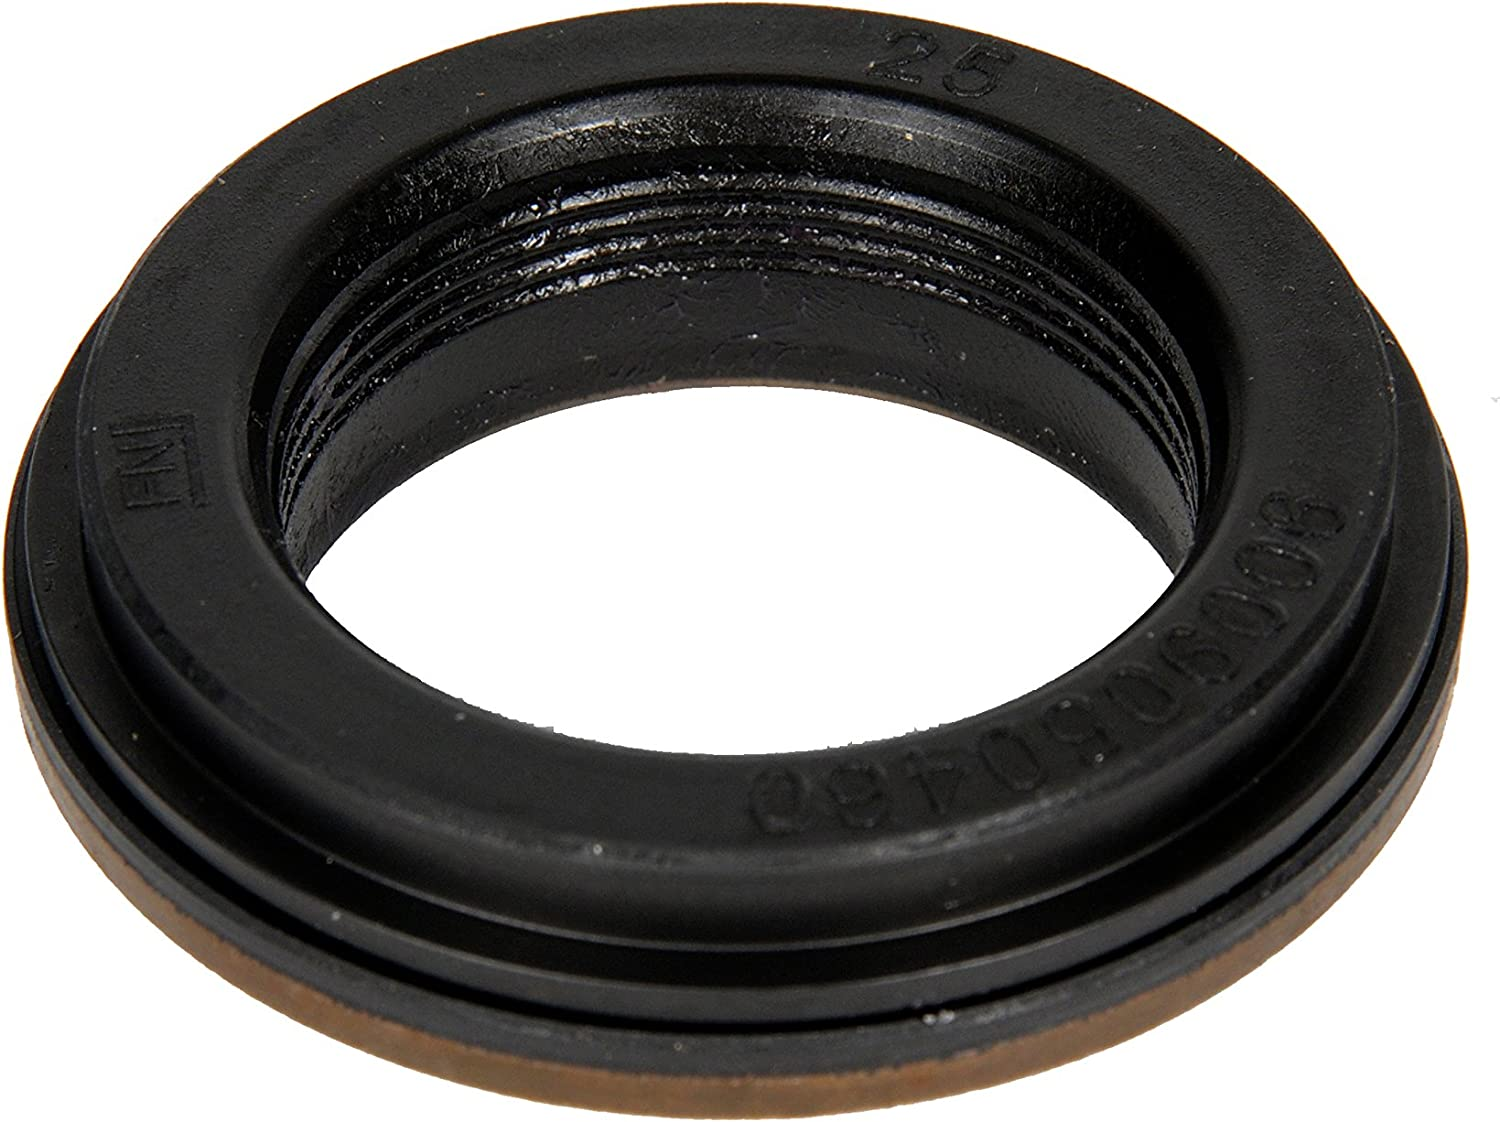 GM Genuine Parts 291-342 Front Shaft Seal Department store Axle Rapid rise